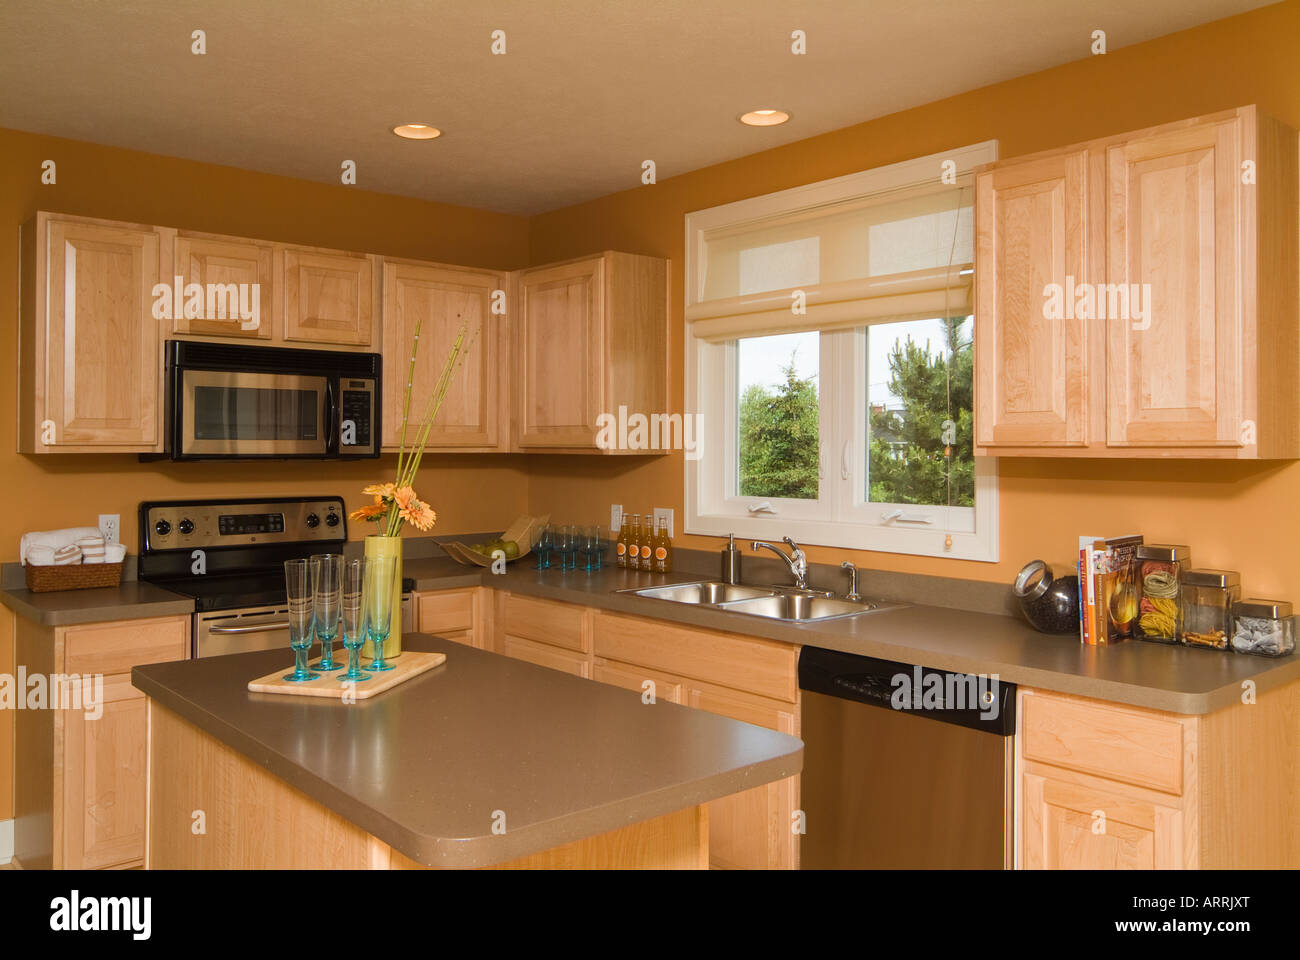 Modern American Kitchen With Contemporary Design Wooden Cabinetry Stock Photo Alamy